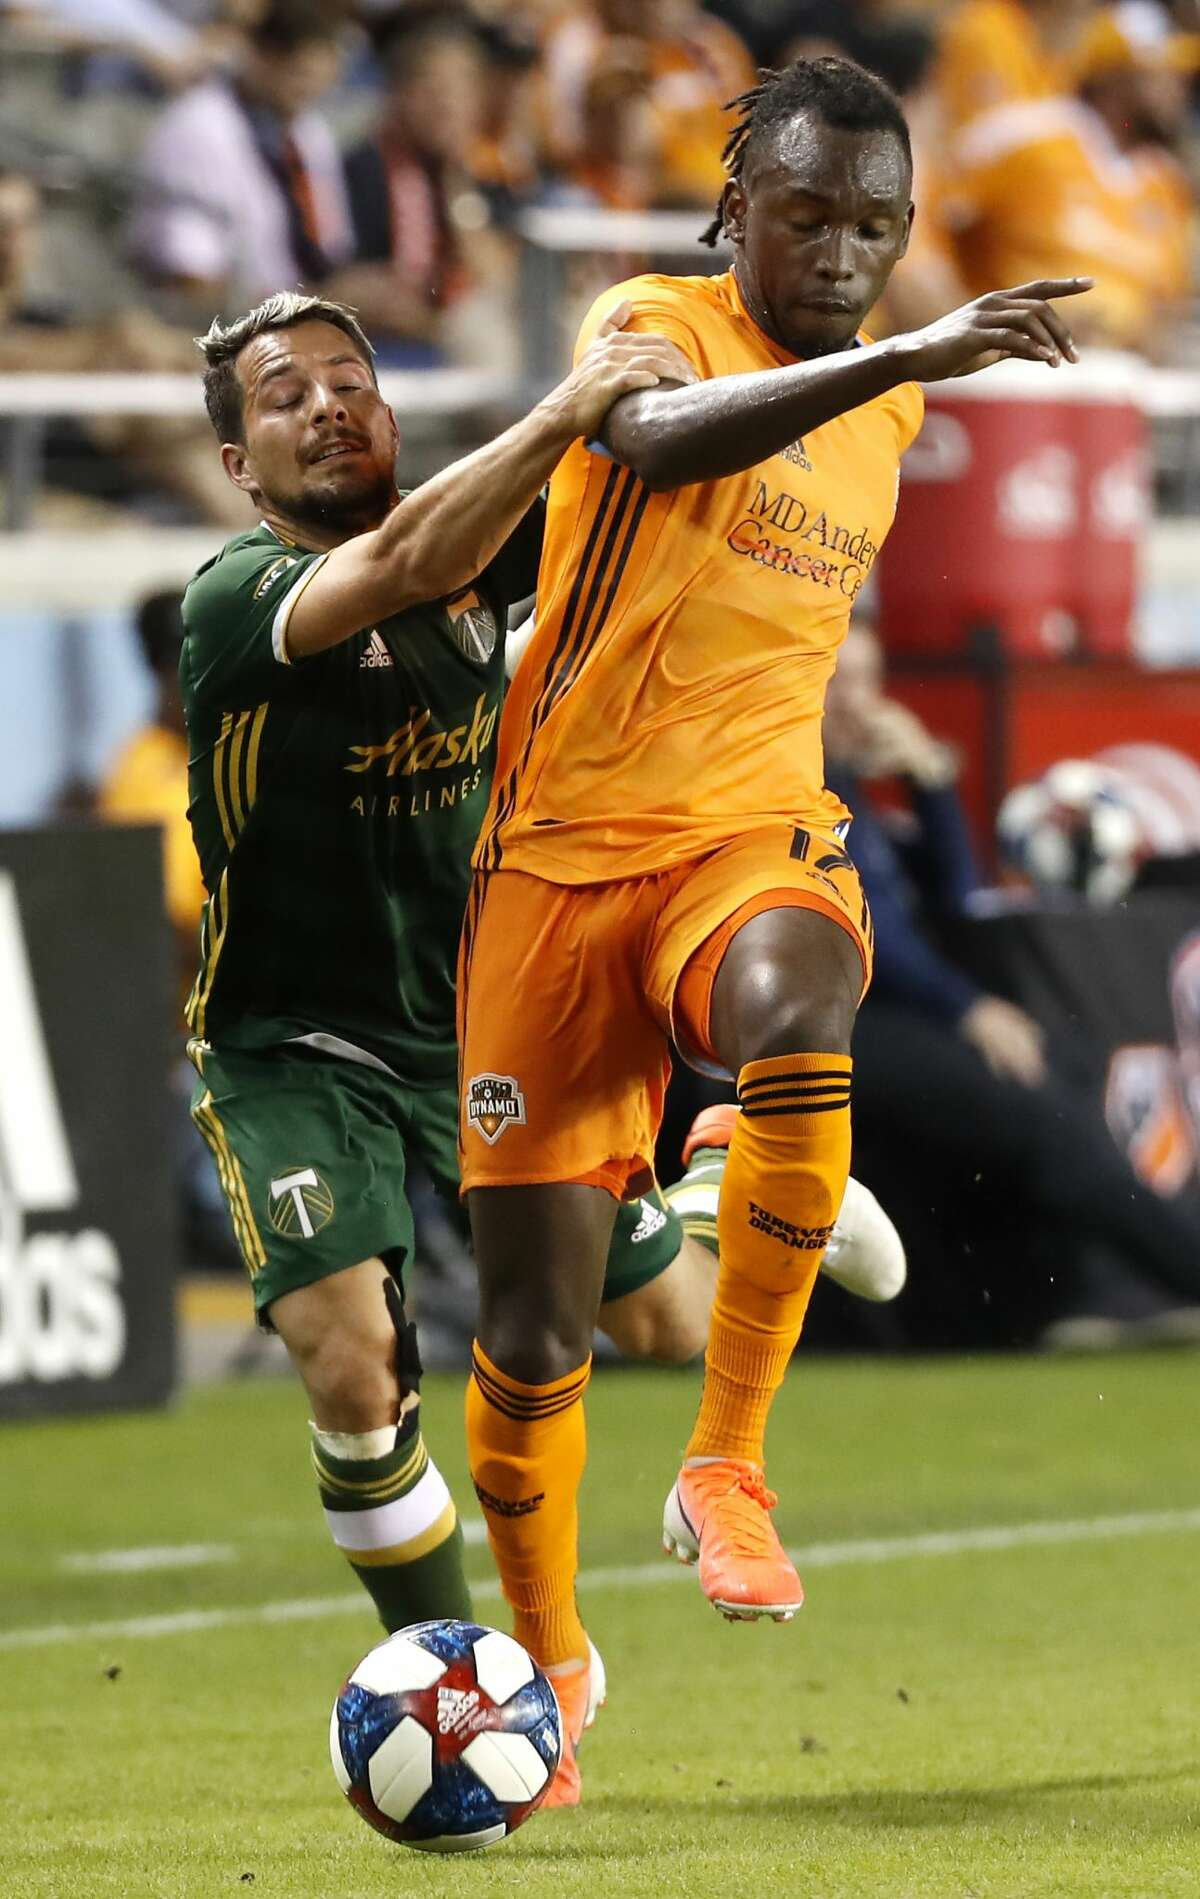 Portland Timbers midfielder Sebastian Blanco (10) holds onto Houston Dynamo forward Alberth Elis (17) as Elis takes the ball up the field during the second half of a Major League Soccer match at BBVA Compass Stadium on Wednesday, May 15, 2019, in Houston.